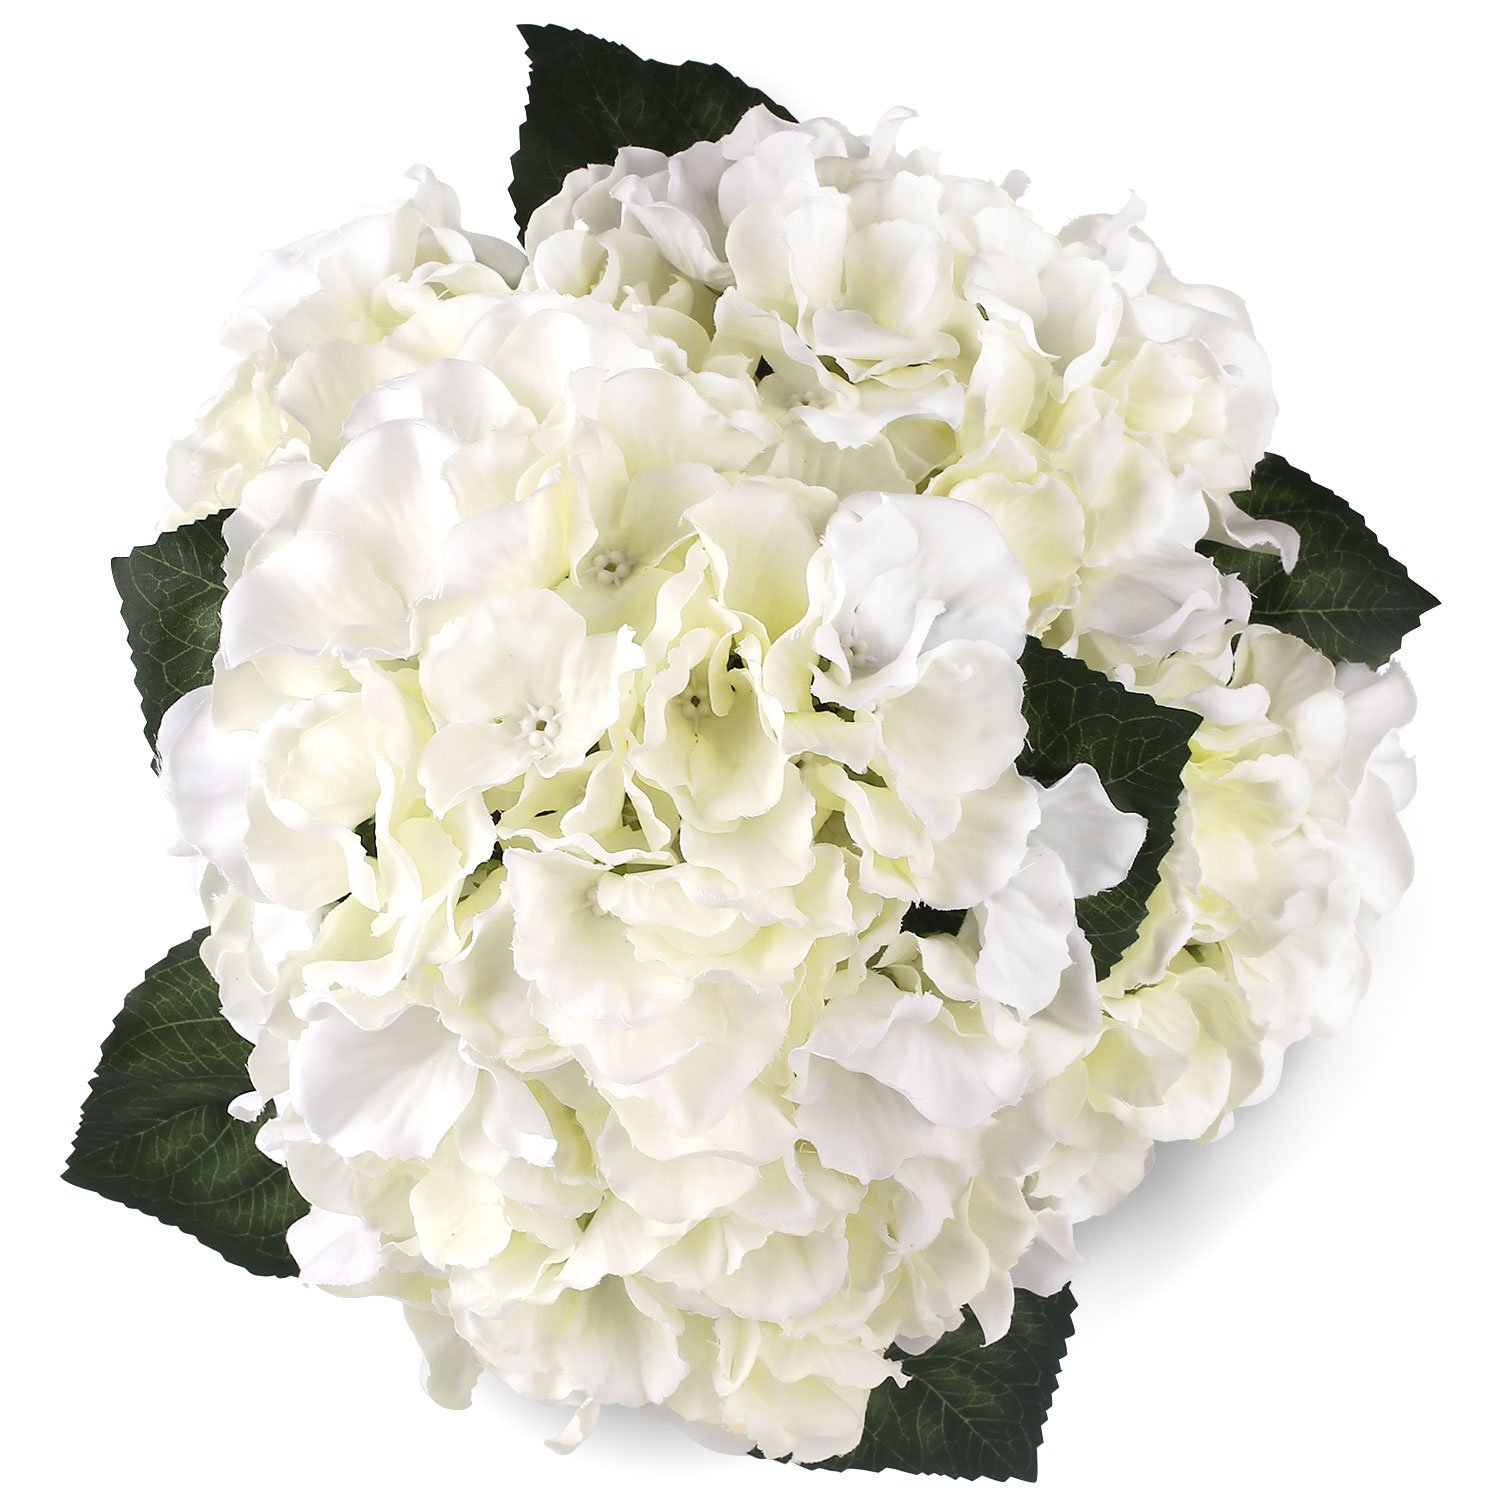 Amazon Decor Artificial Flowers Real Touch Silk Flowers Floral